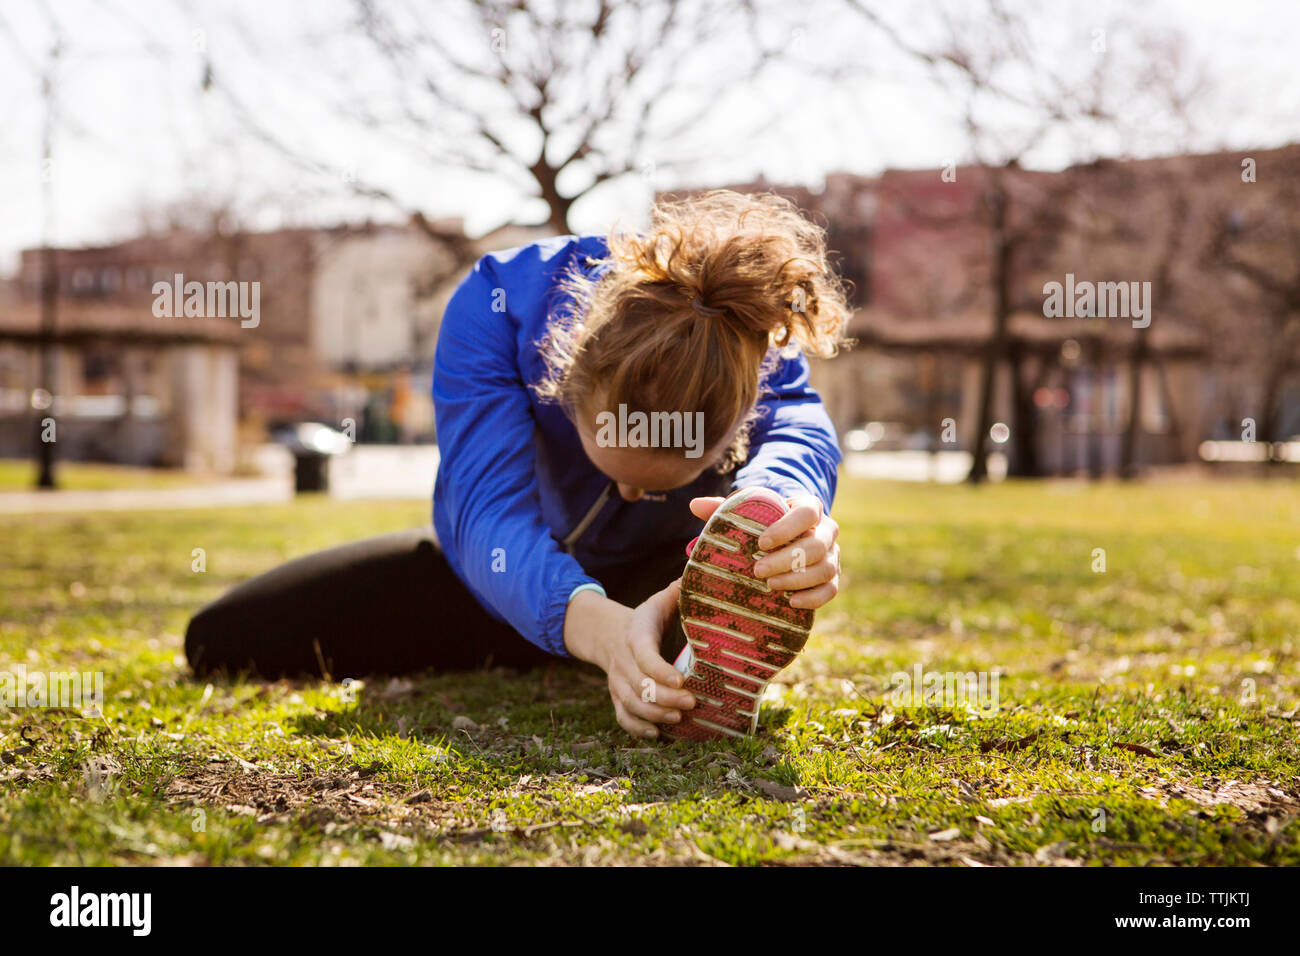 Woman exercising while sitting on field in park - Stock Image